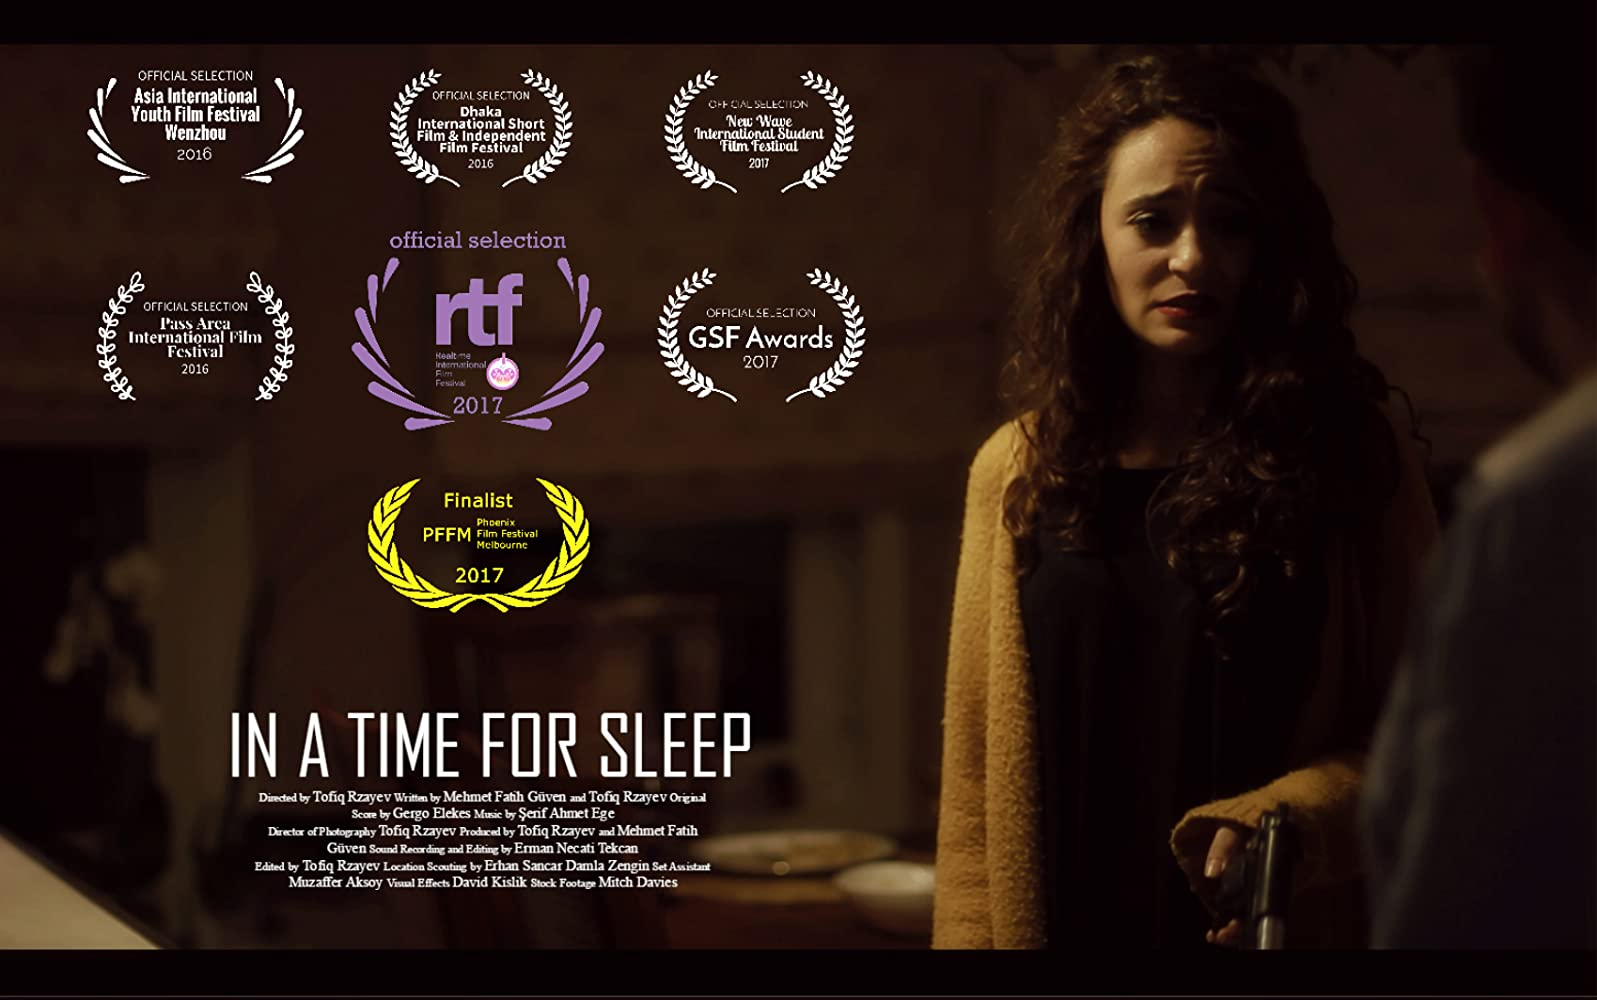 In a Time for Sleep (2016)